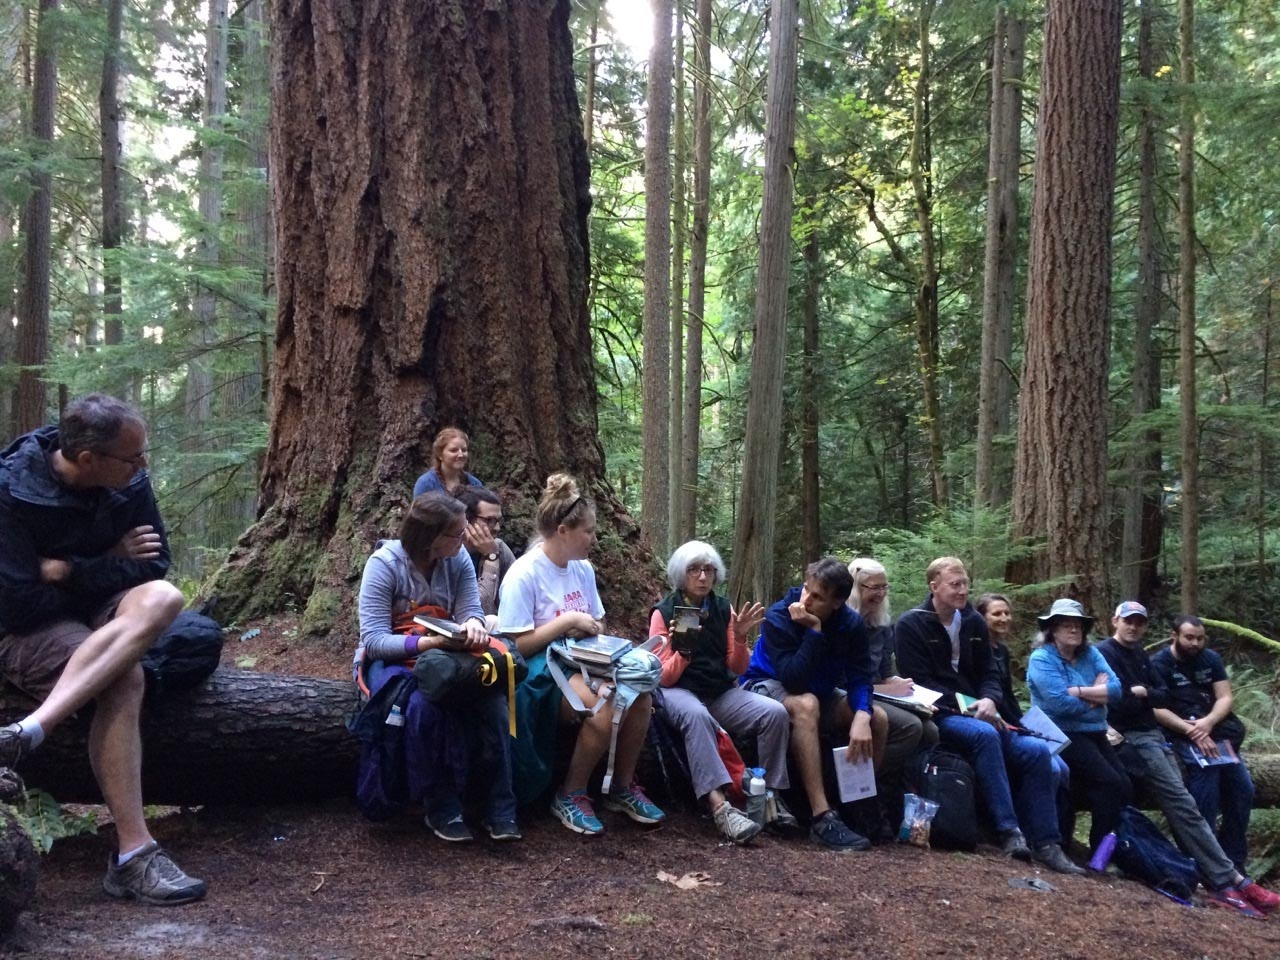 CEHC retreaters share their favorite teaching books in the woods outside Pack Forest Research Station, Washington. Photograph courtesy of the author.